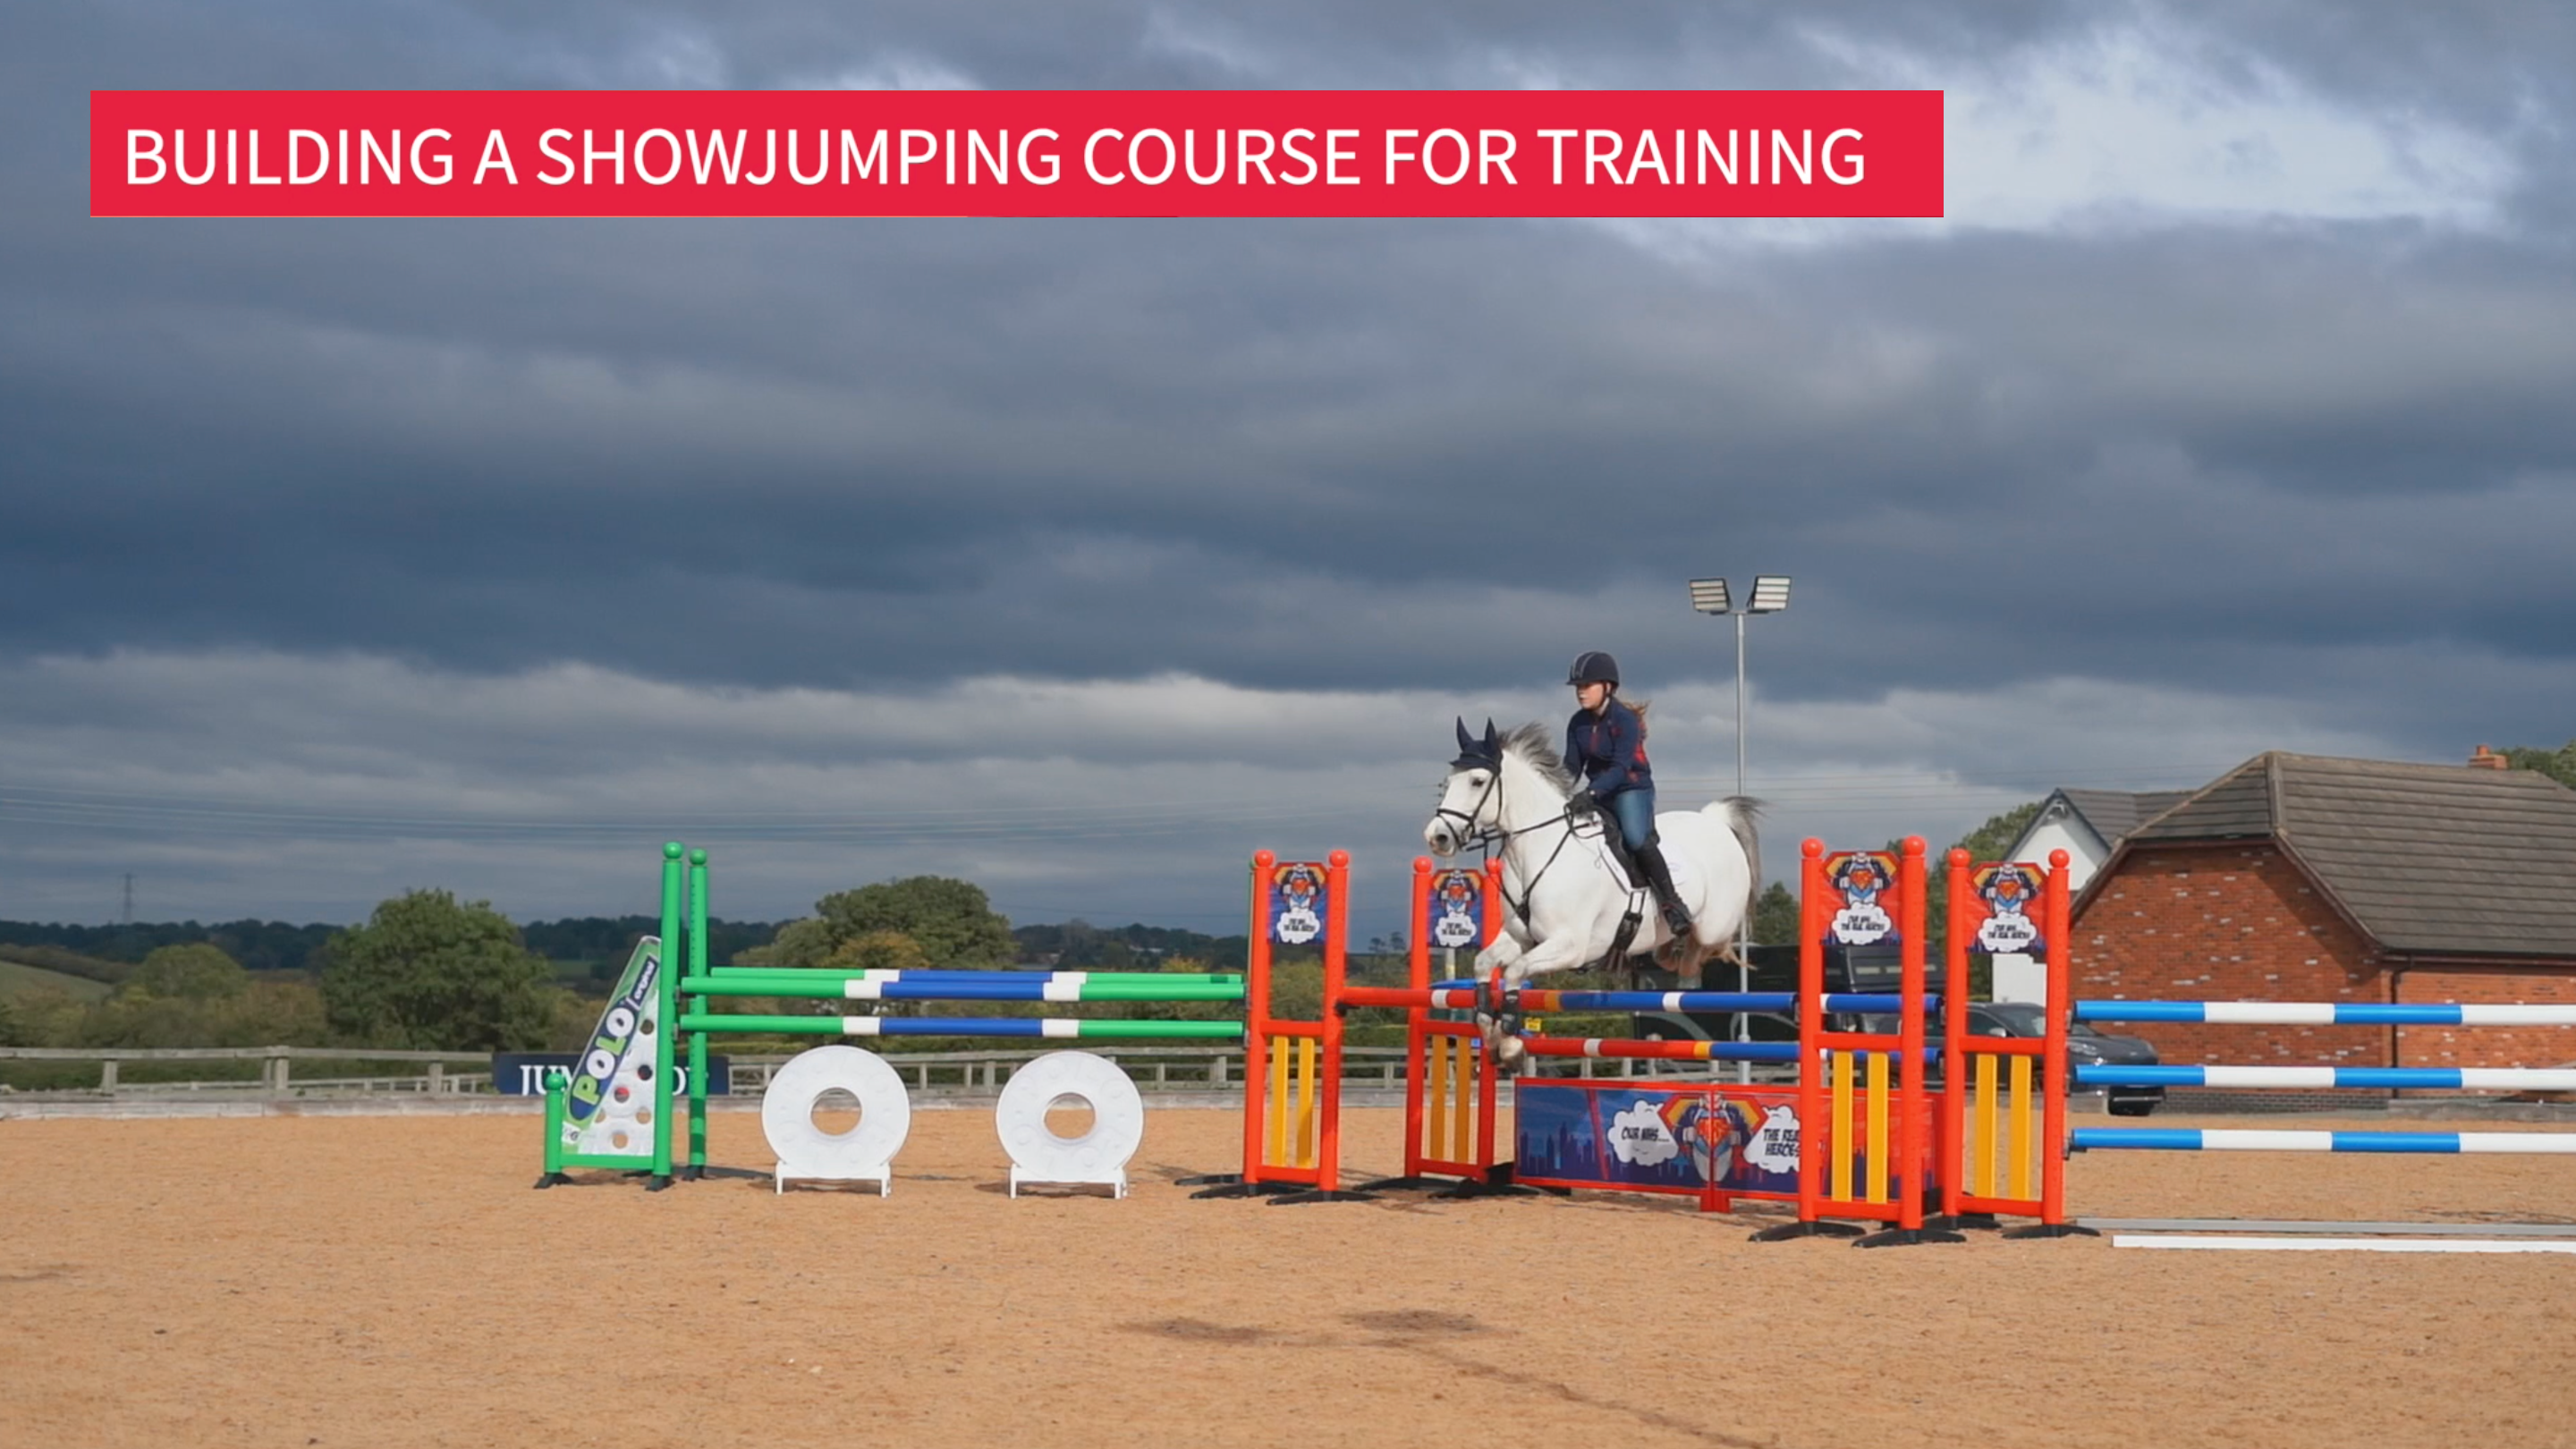 Building a Showjumping Course for Training